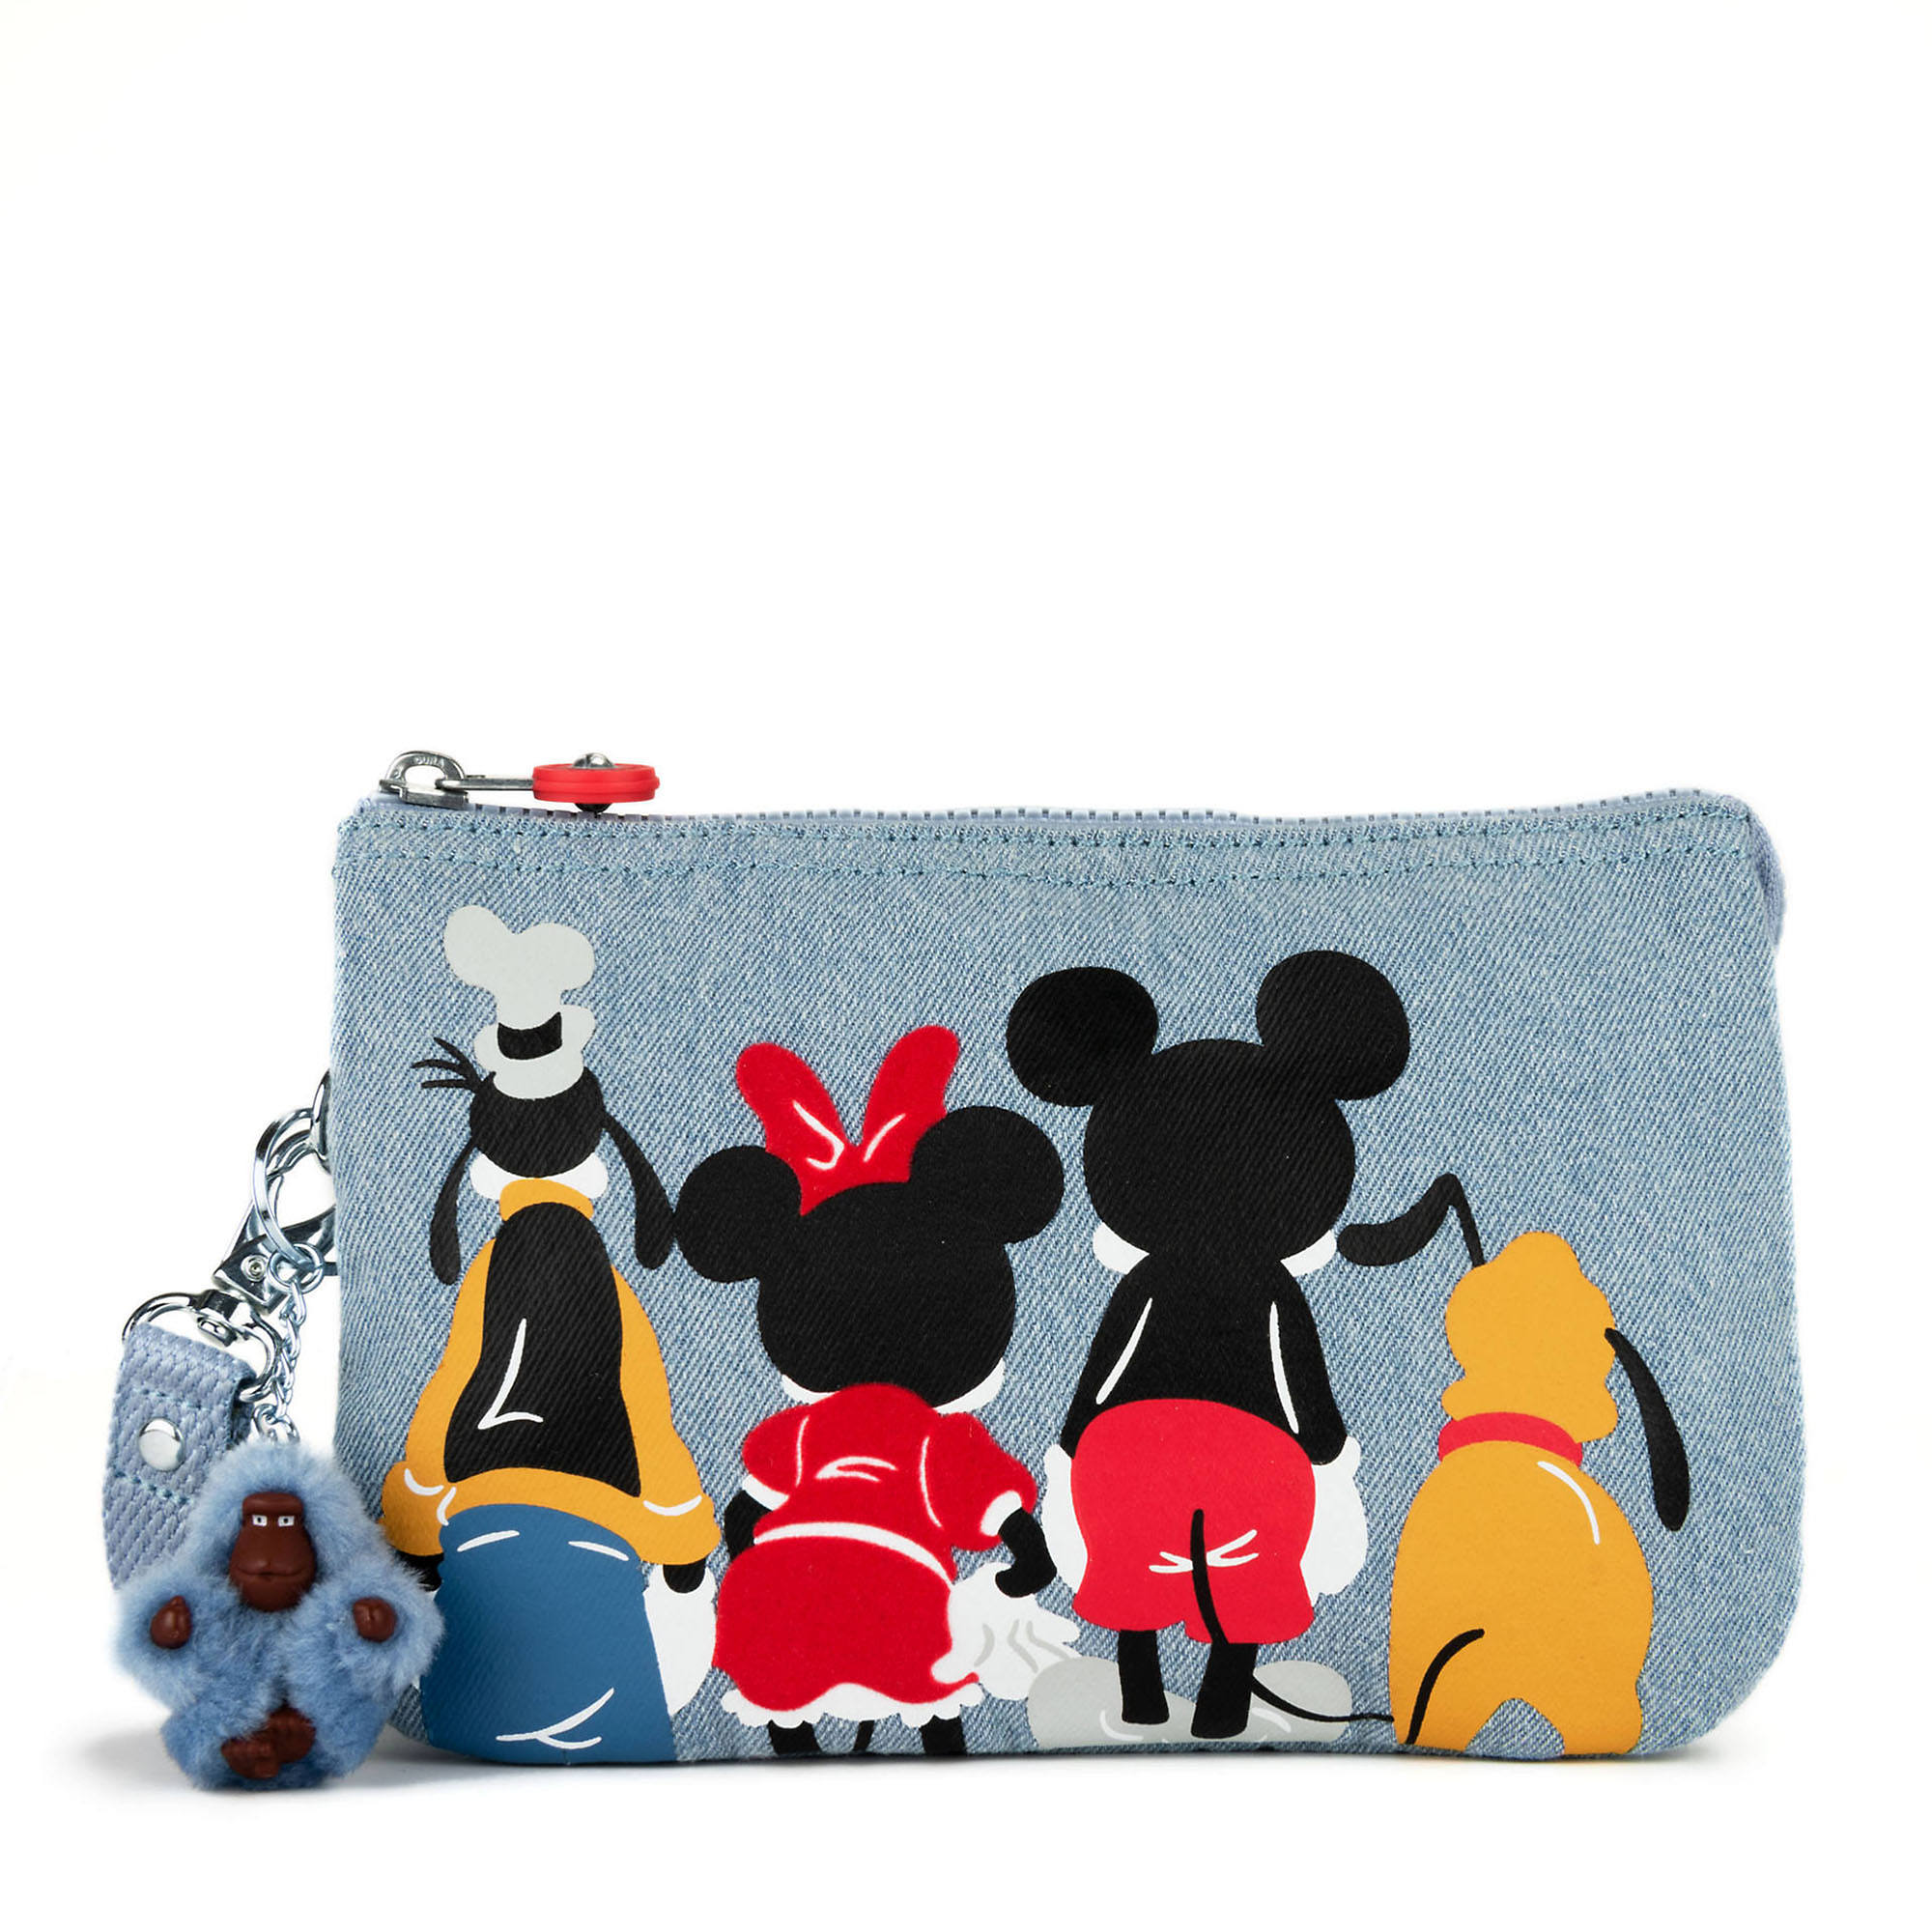 81560c31100 Disney s 90 Years of Mickey Mouse Creativity Extra Large Pouch